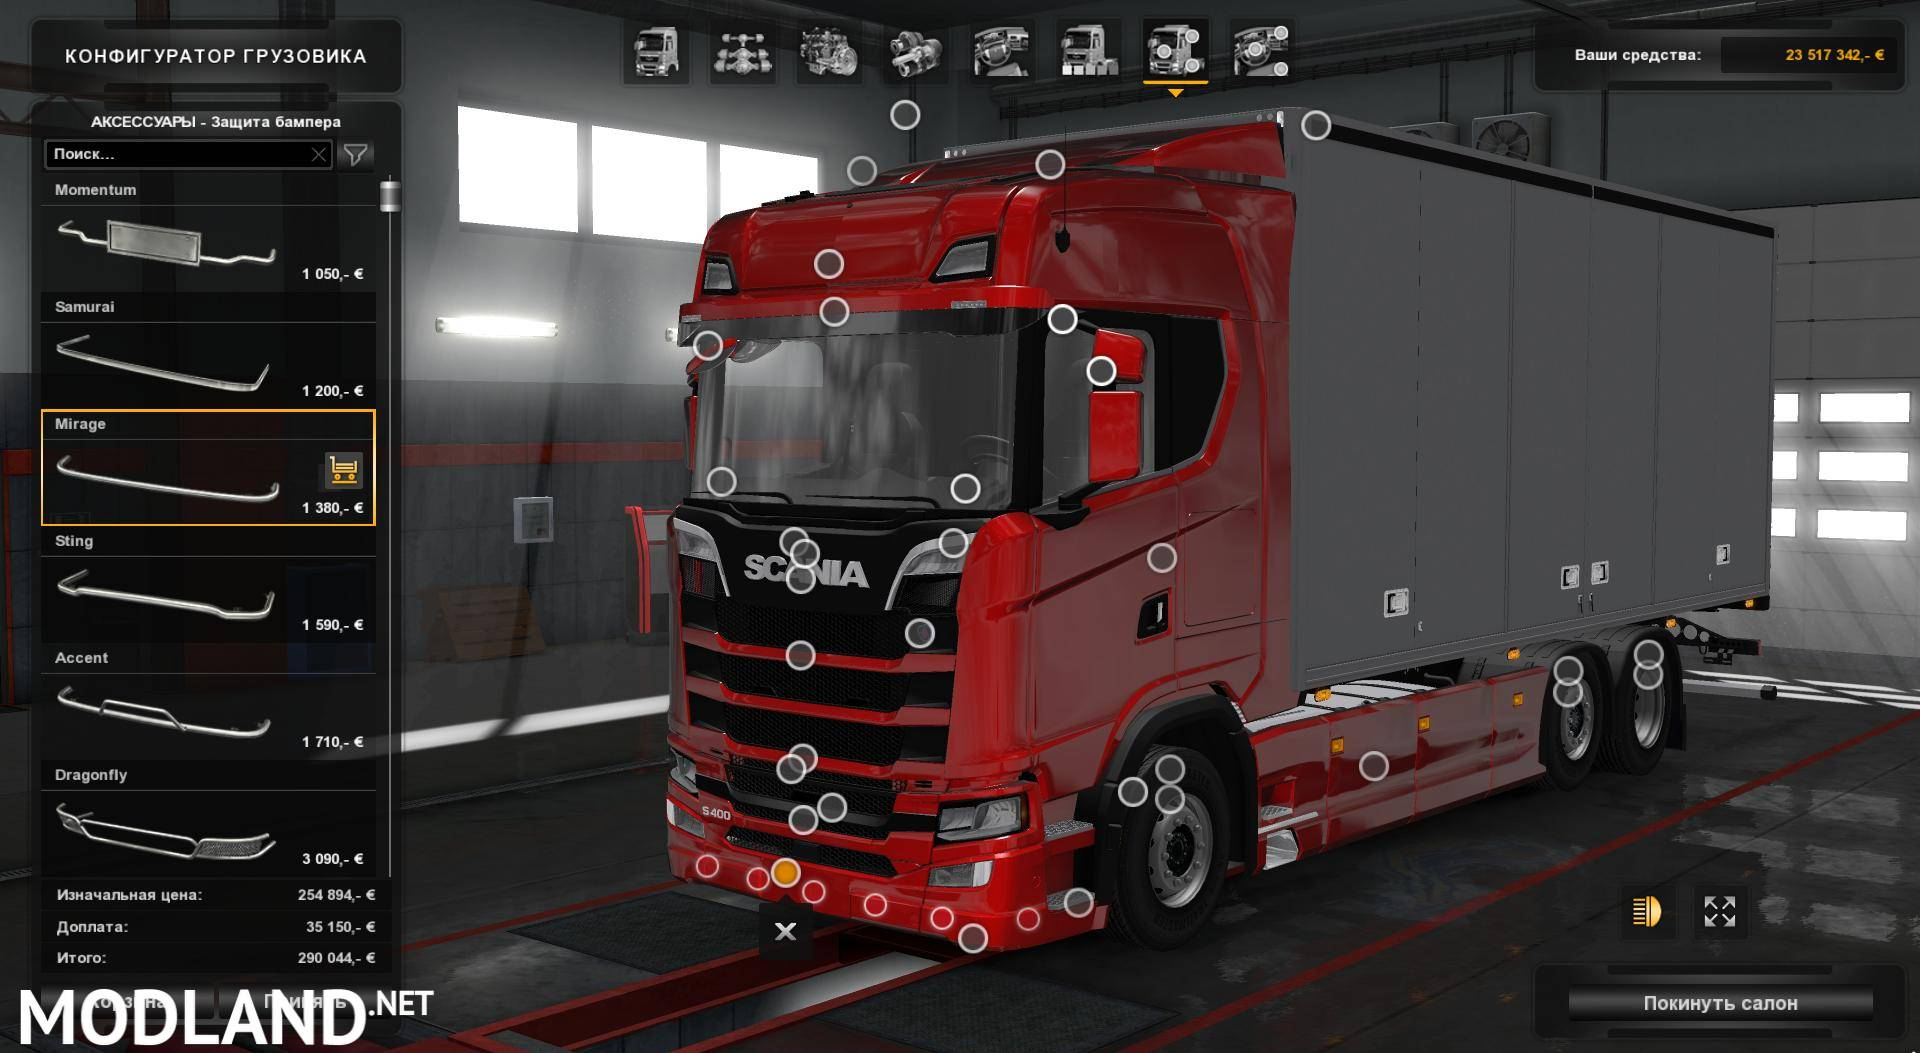 scania s730 nextgen mod for ets 2. Black Bedroom Furniture Sets. Home Design Ideas